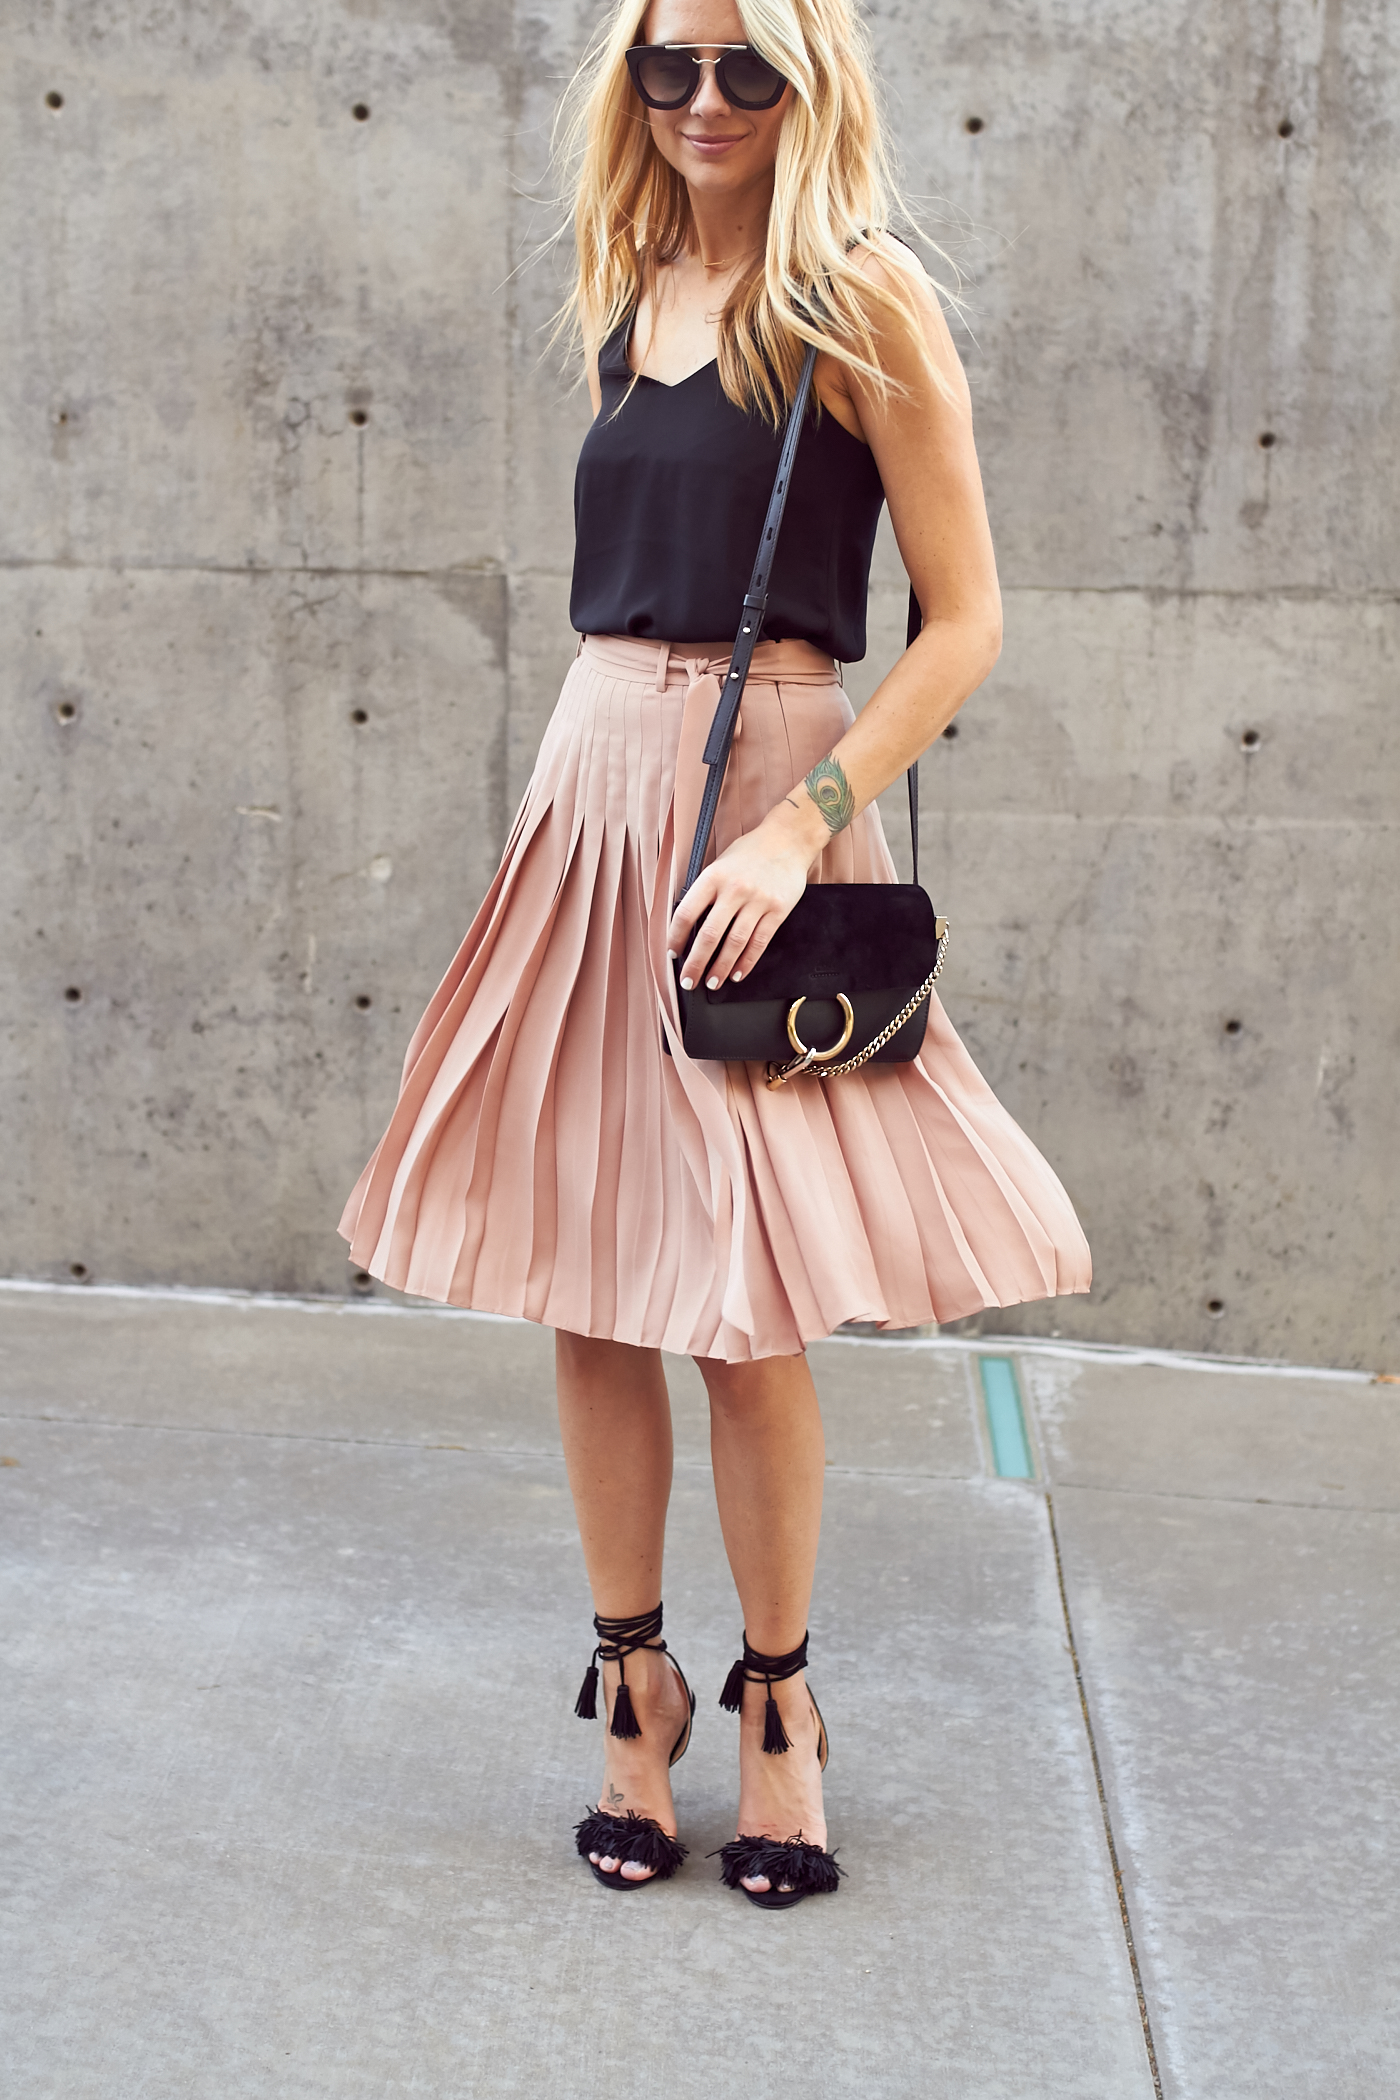 fashion-jackson-chloe-faye-handbag-pink-pleated-skirt-black-fringe-sandal-heels